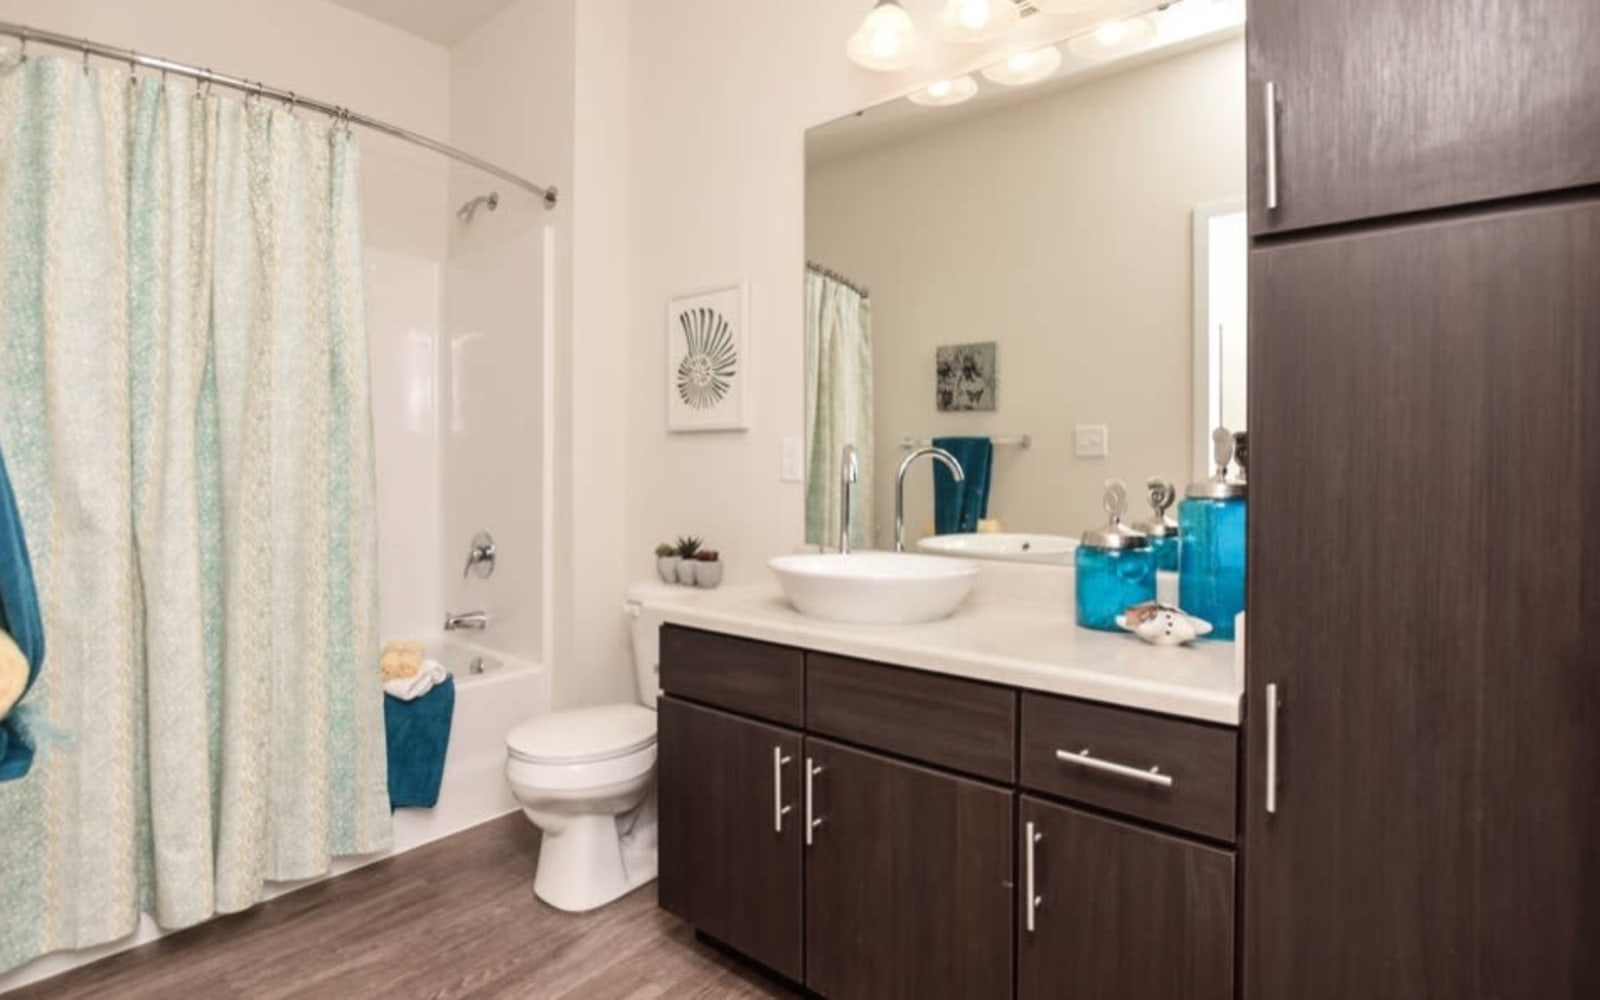 Bathrooms with plenty of storage space at Aventura at Towne Centre in Ellisville, Missouri.